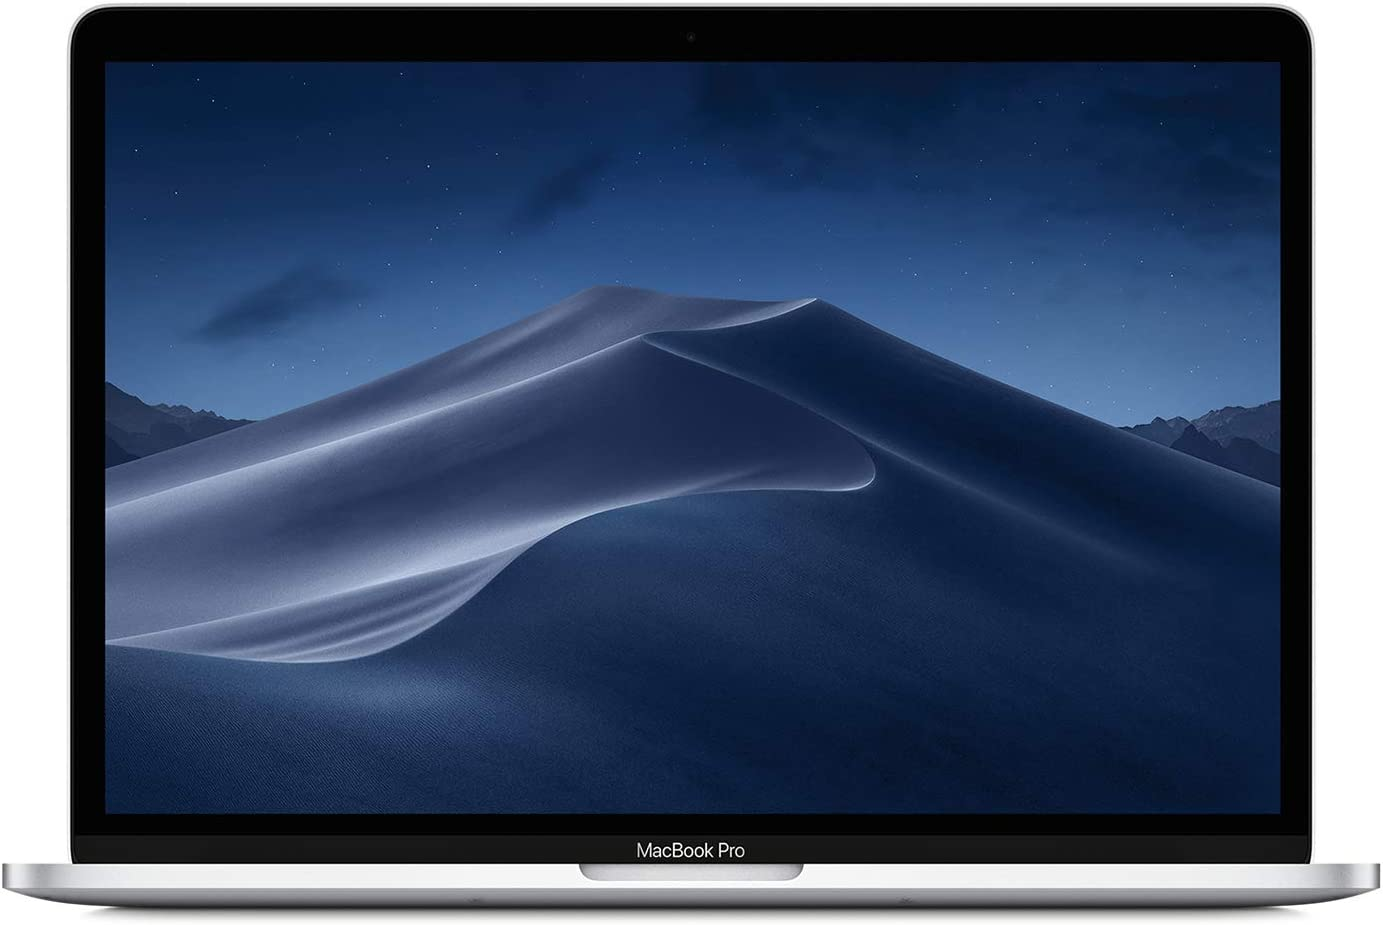 The Apple MacBook Pro travel product recommended by Mikael Uusitalo on Lifney.